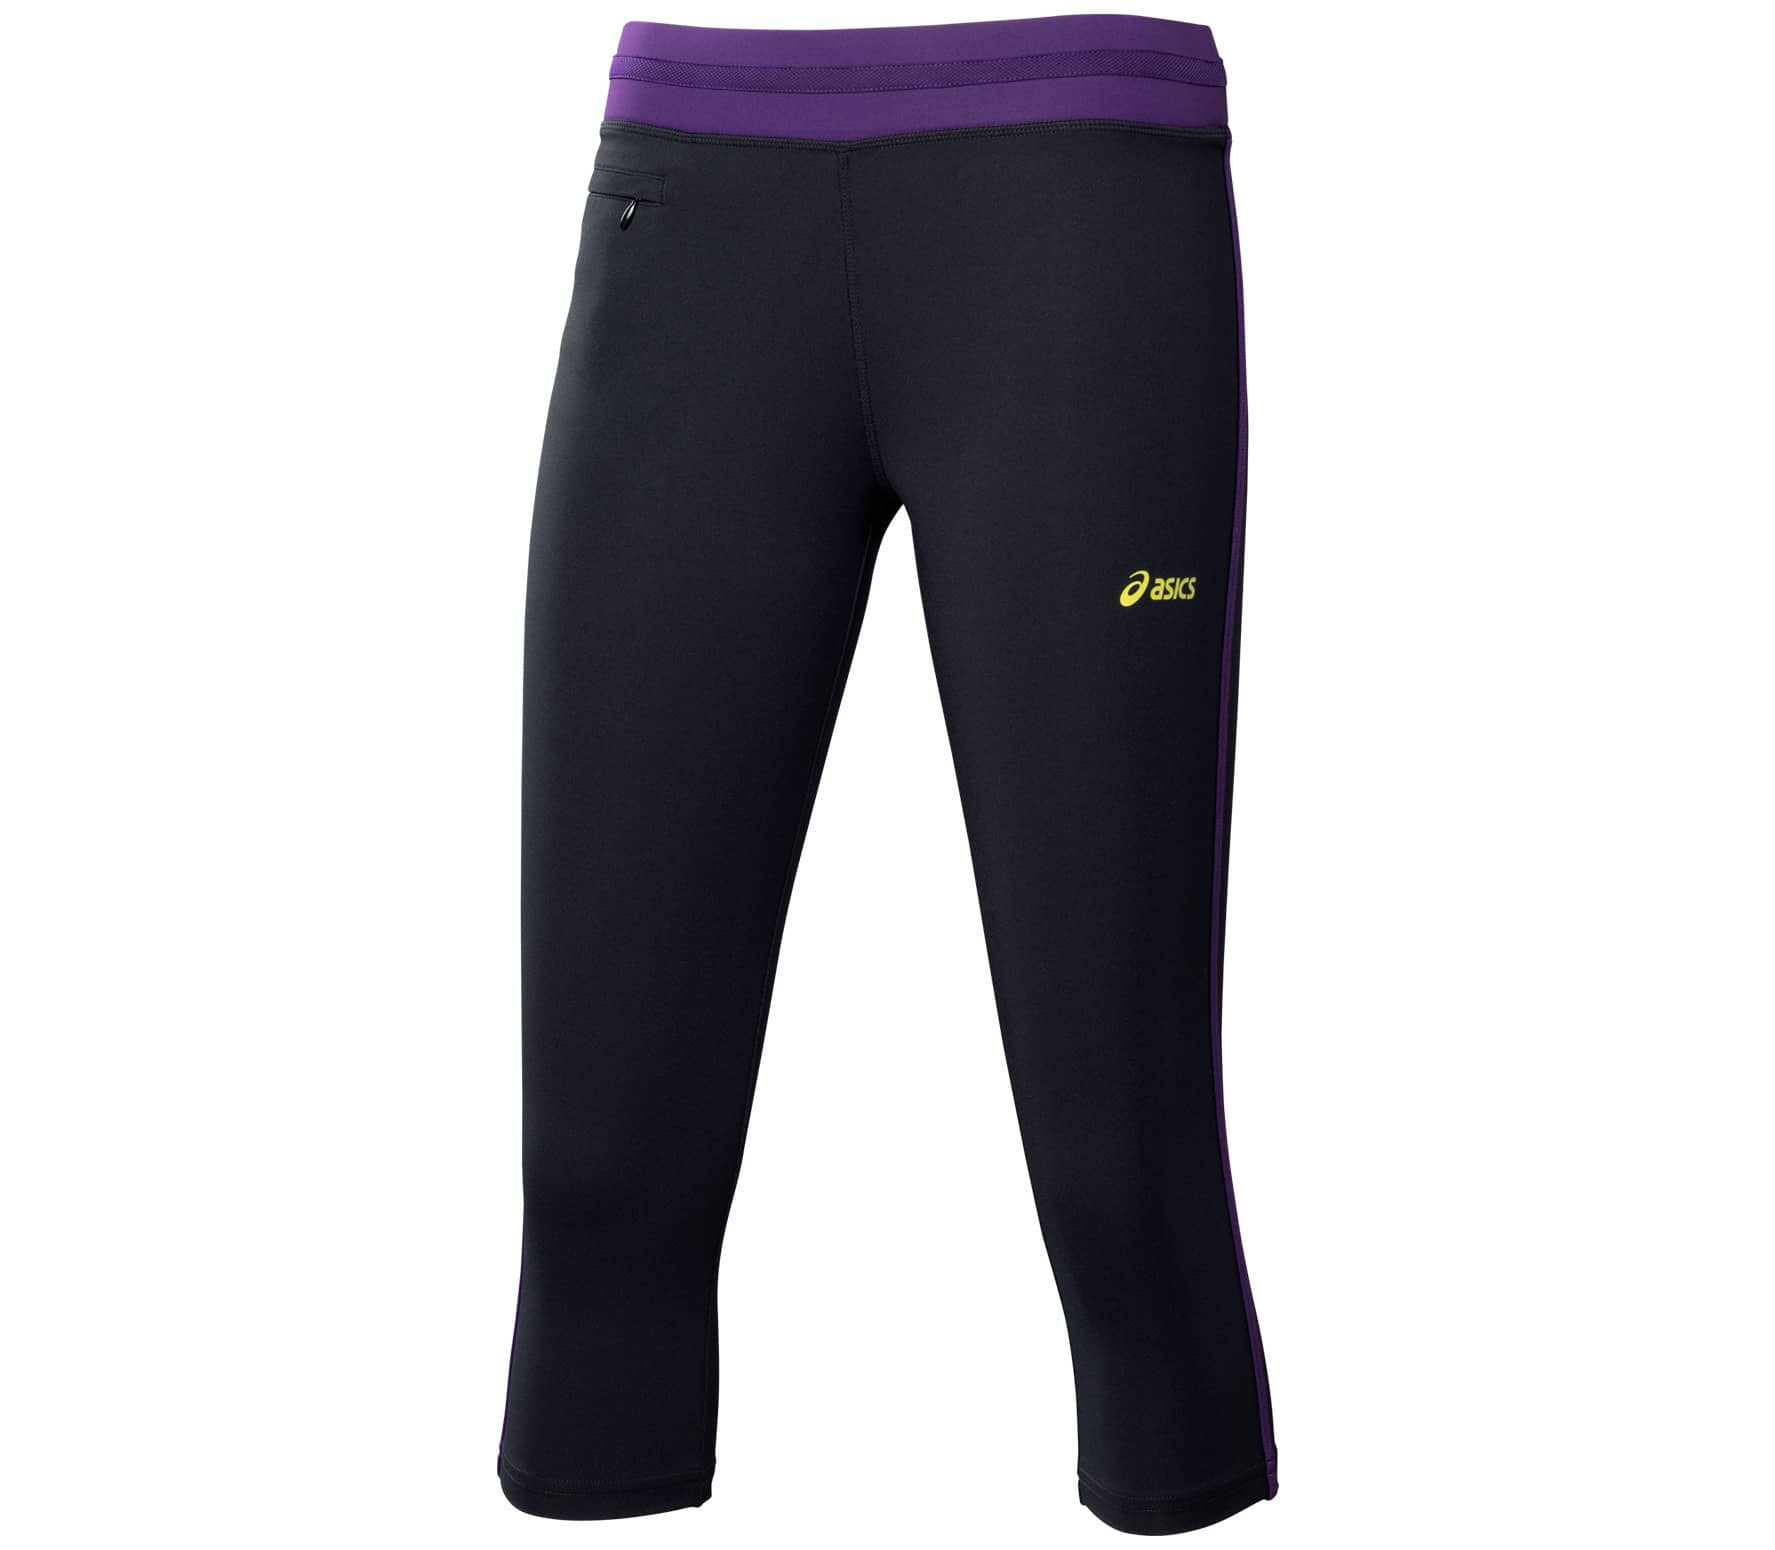 f4c0427b4b4 ASICS - 3/4 Tight Dames Trainingsbroek (zwart/purper) online kopen ...